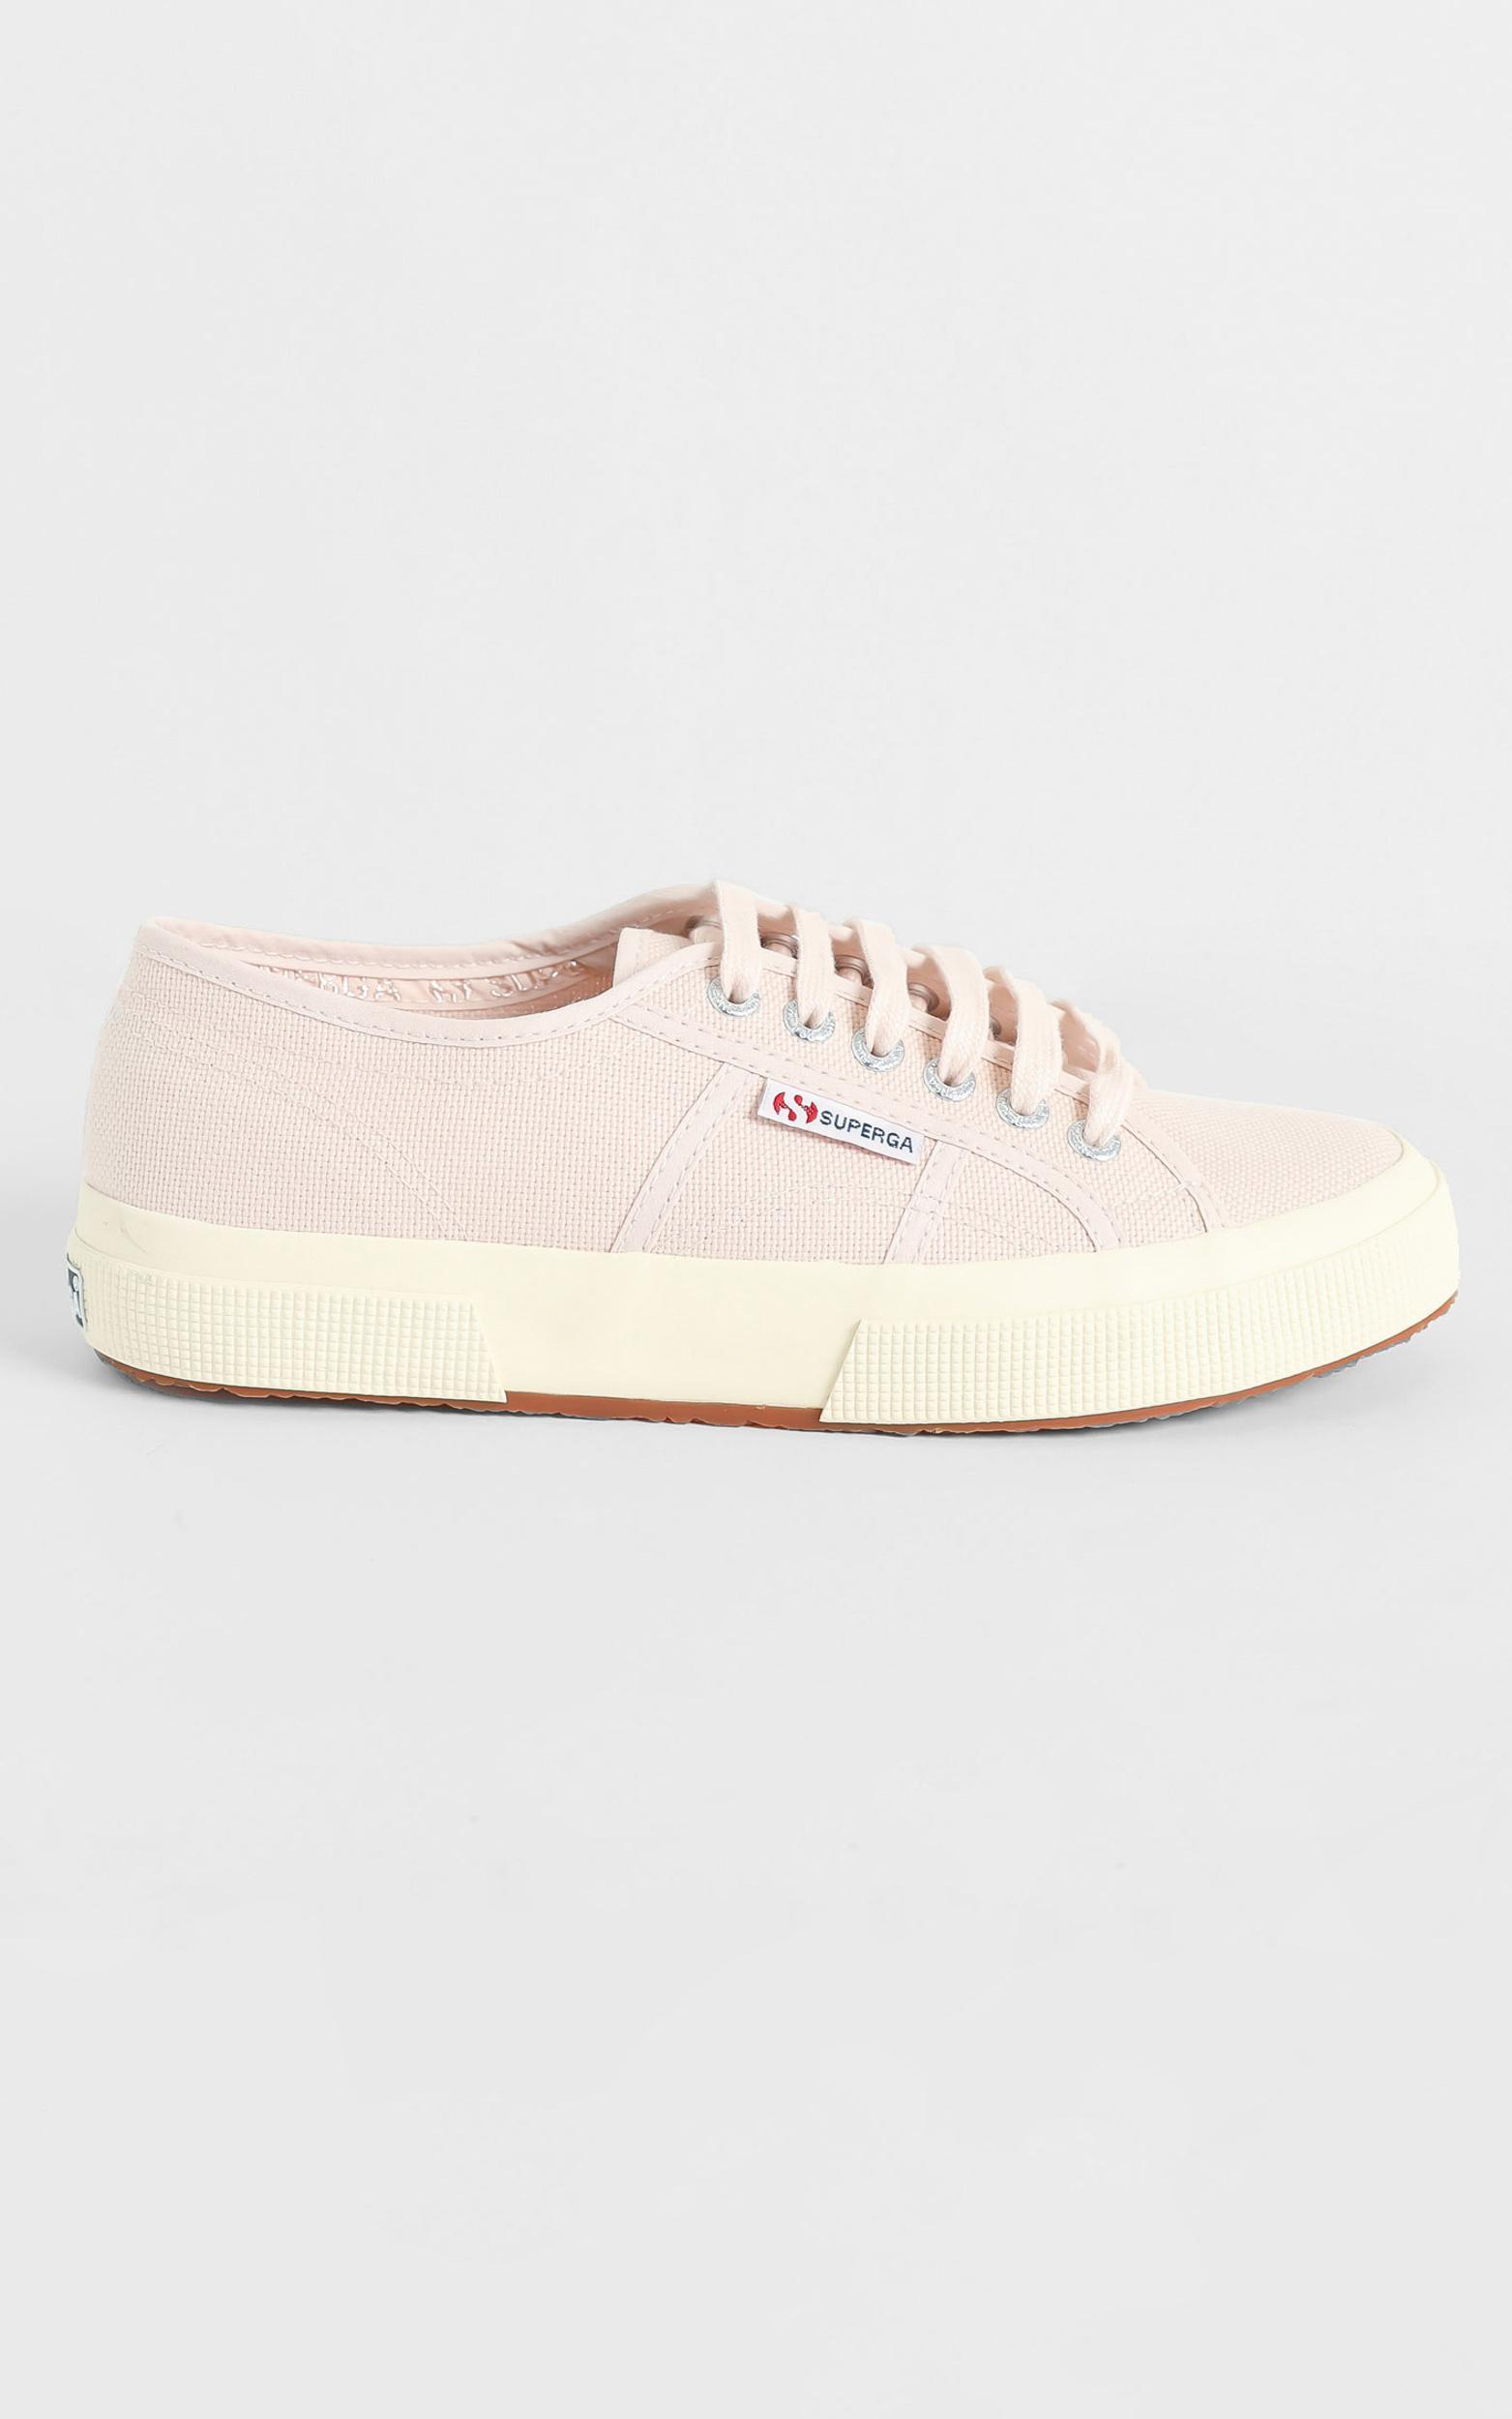 Superga - 2750 Cotu Classic Sneaker in pink peach blush - off white - 5, White, hi-res image number null